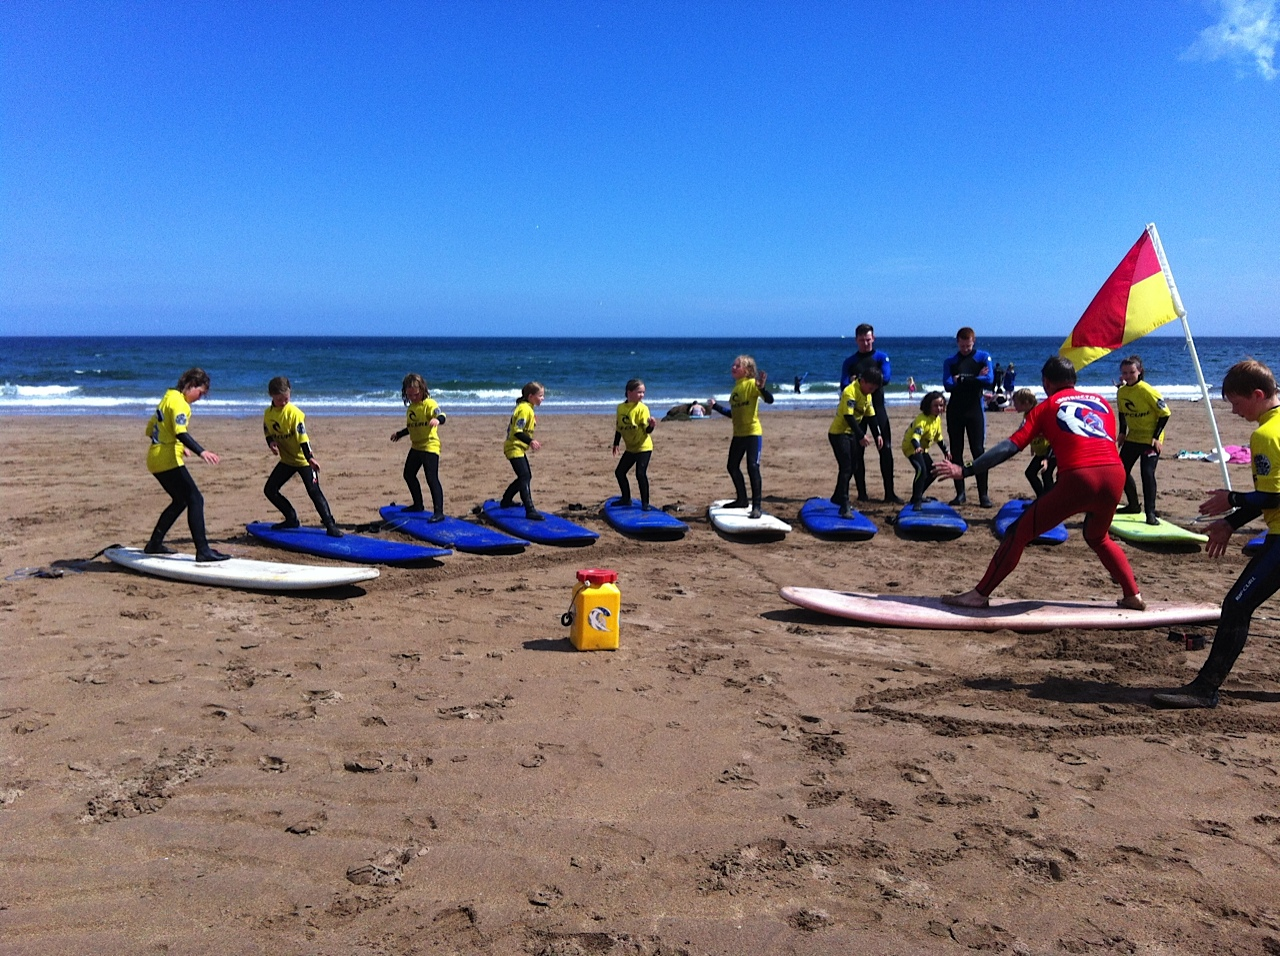 surf lessons on Coldingham beach